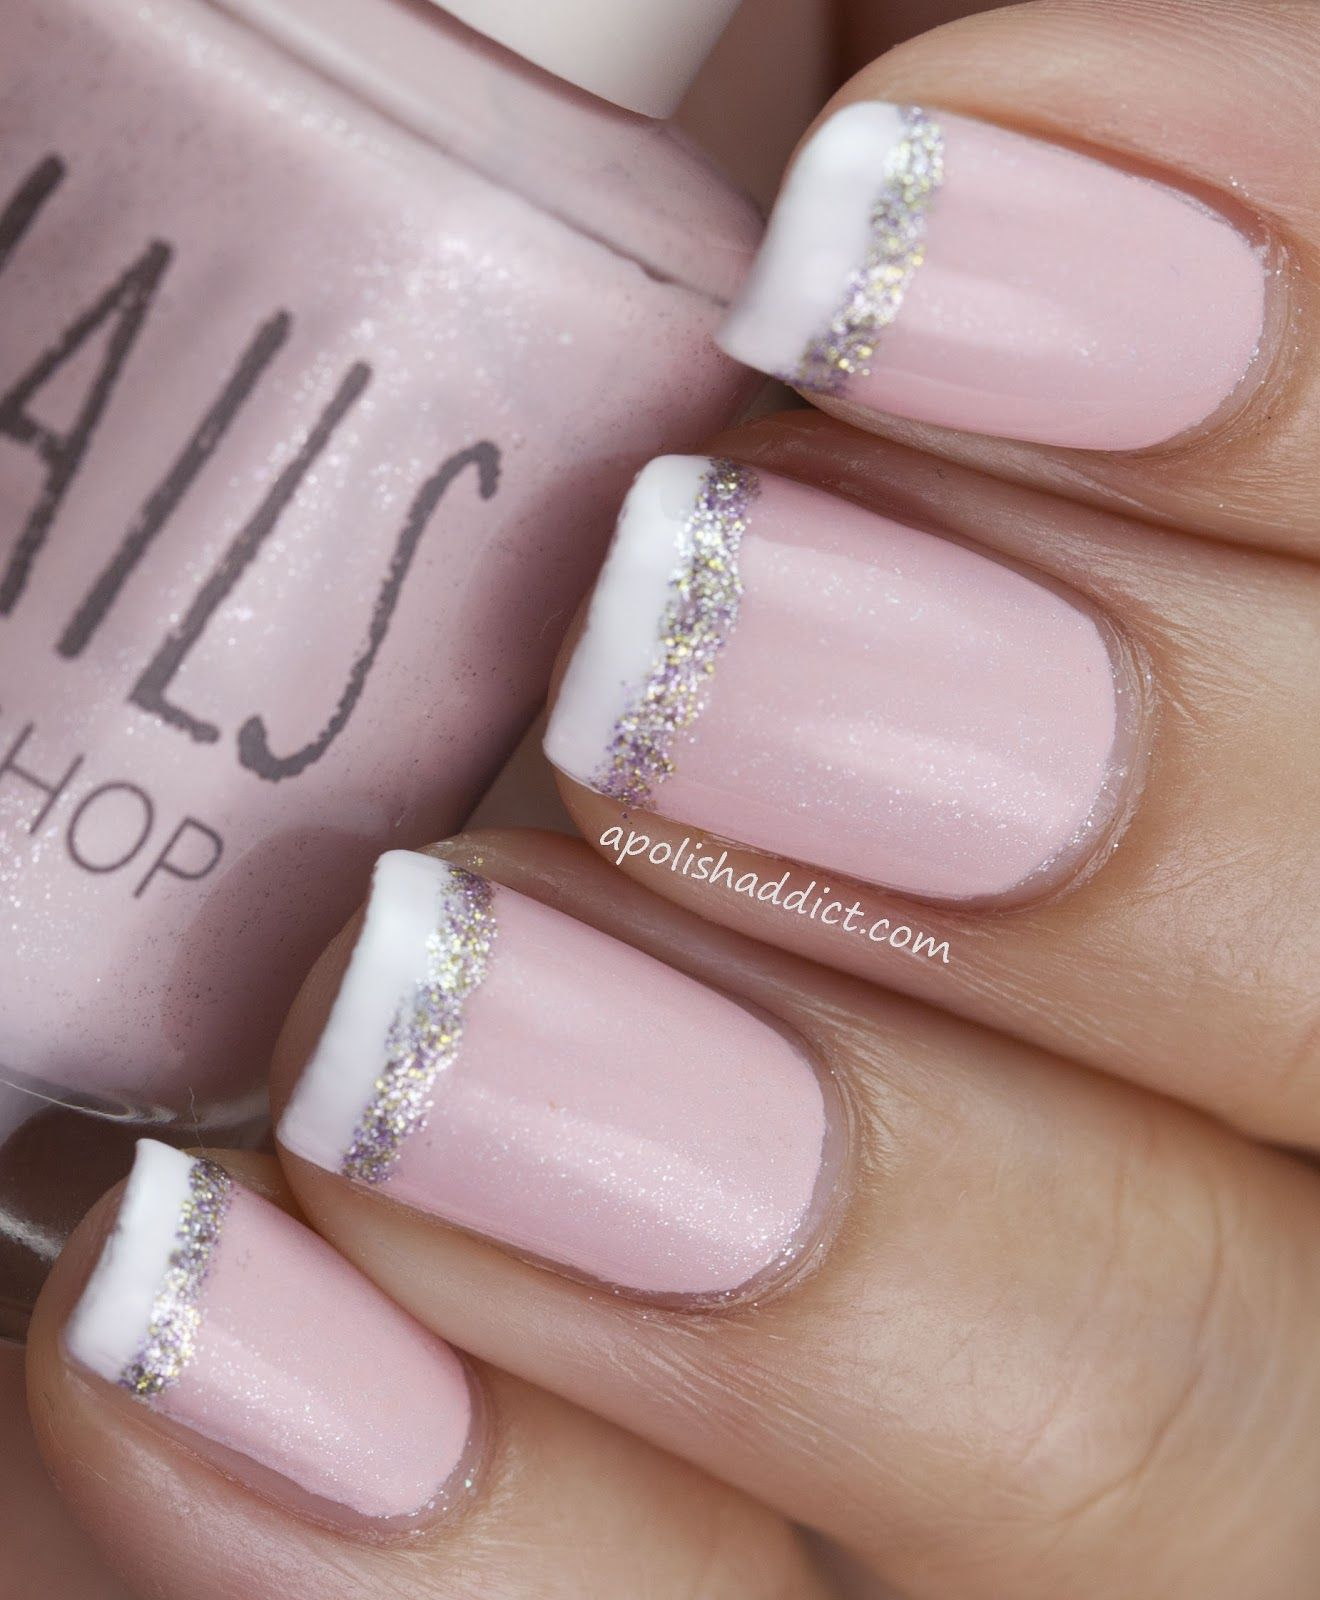 A Polish Addict: Topshop Powder & French Tips | Beauty | Pinterest ...